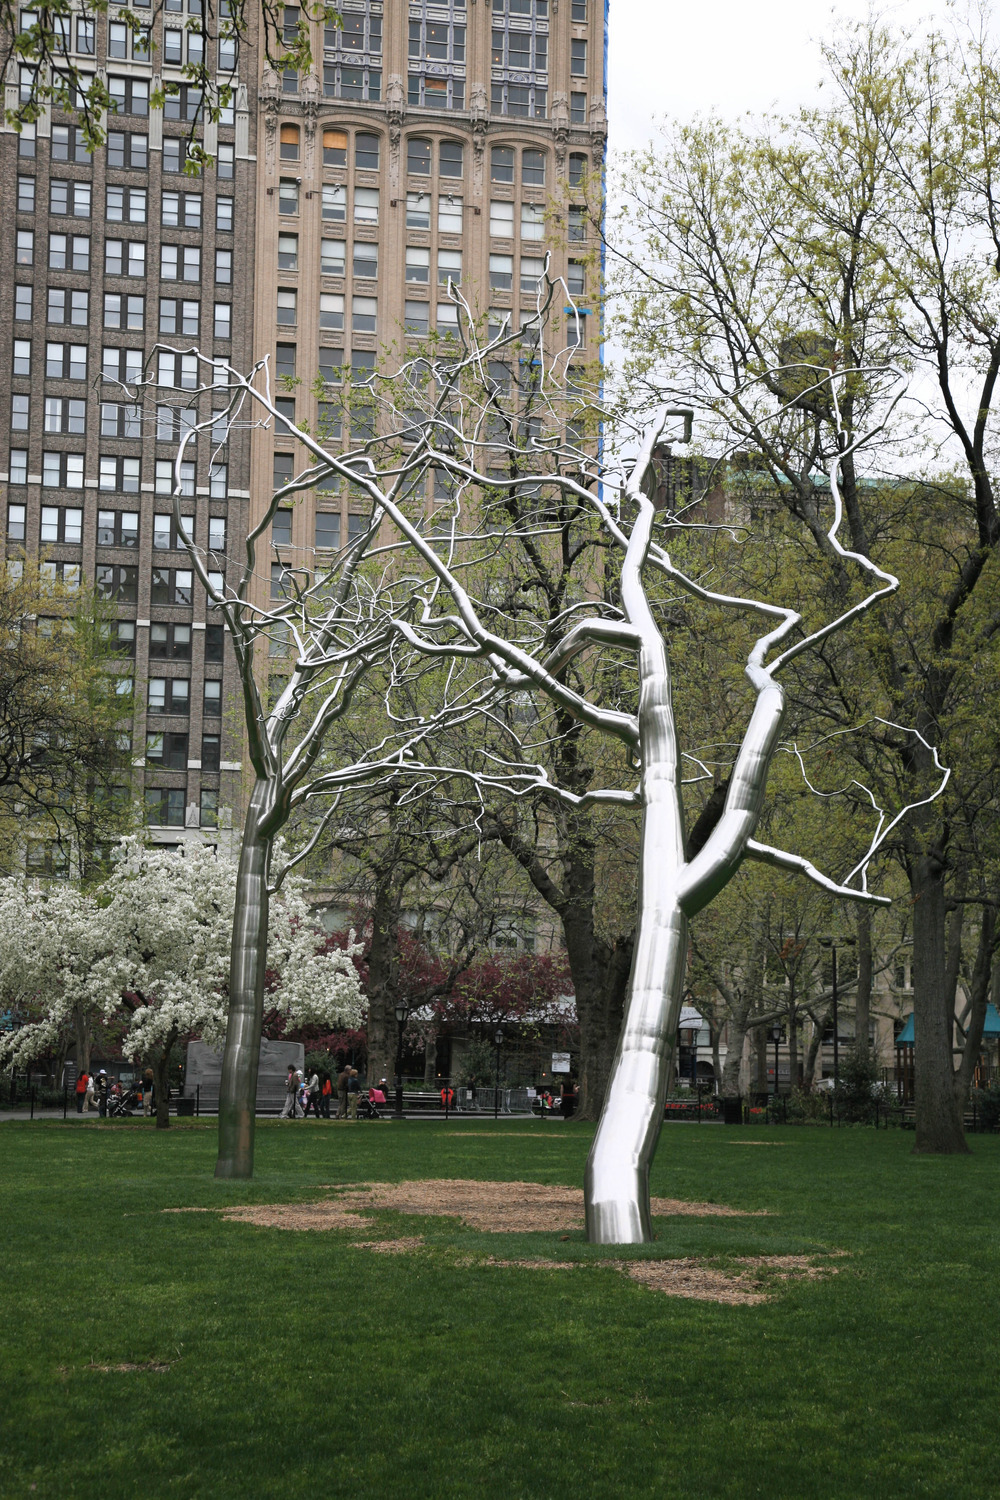 Conjoined, 2007, Stainless steel and concrete, 42 x 46 x 28 feet   Conjoined   was first commissioned and exhibited at Madison Square Park, New York, from 2007 to 2008.  The falseness or illogical growth of these dendritic structures form a kind of hallucinatory or unreal experience.    Conjoined   also represents a venturing from the earlier work, characterized by an emphasis on restraint, into the additional possibilities of rhizomatic structures and ideas.  As in all the Dendroids, heavy gauge utilitarian and industrial pipes are physically altered by means of tremendous hydraulic and mechanical pressure to contradict their original function and physical anonymity.    Conjoined   was acquired by the Modern Art Museum of Fort Worth designed by architect Tadao Ando.